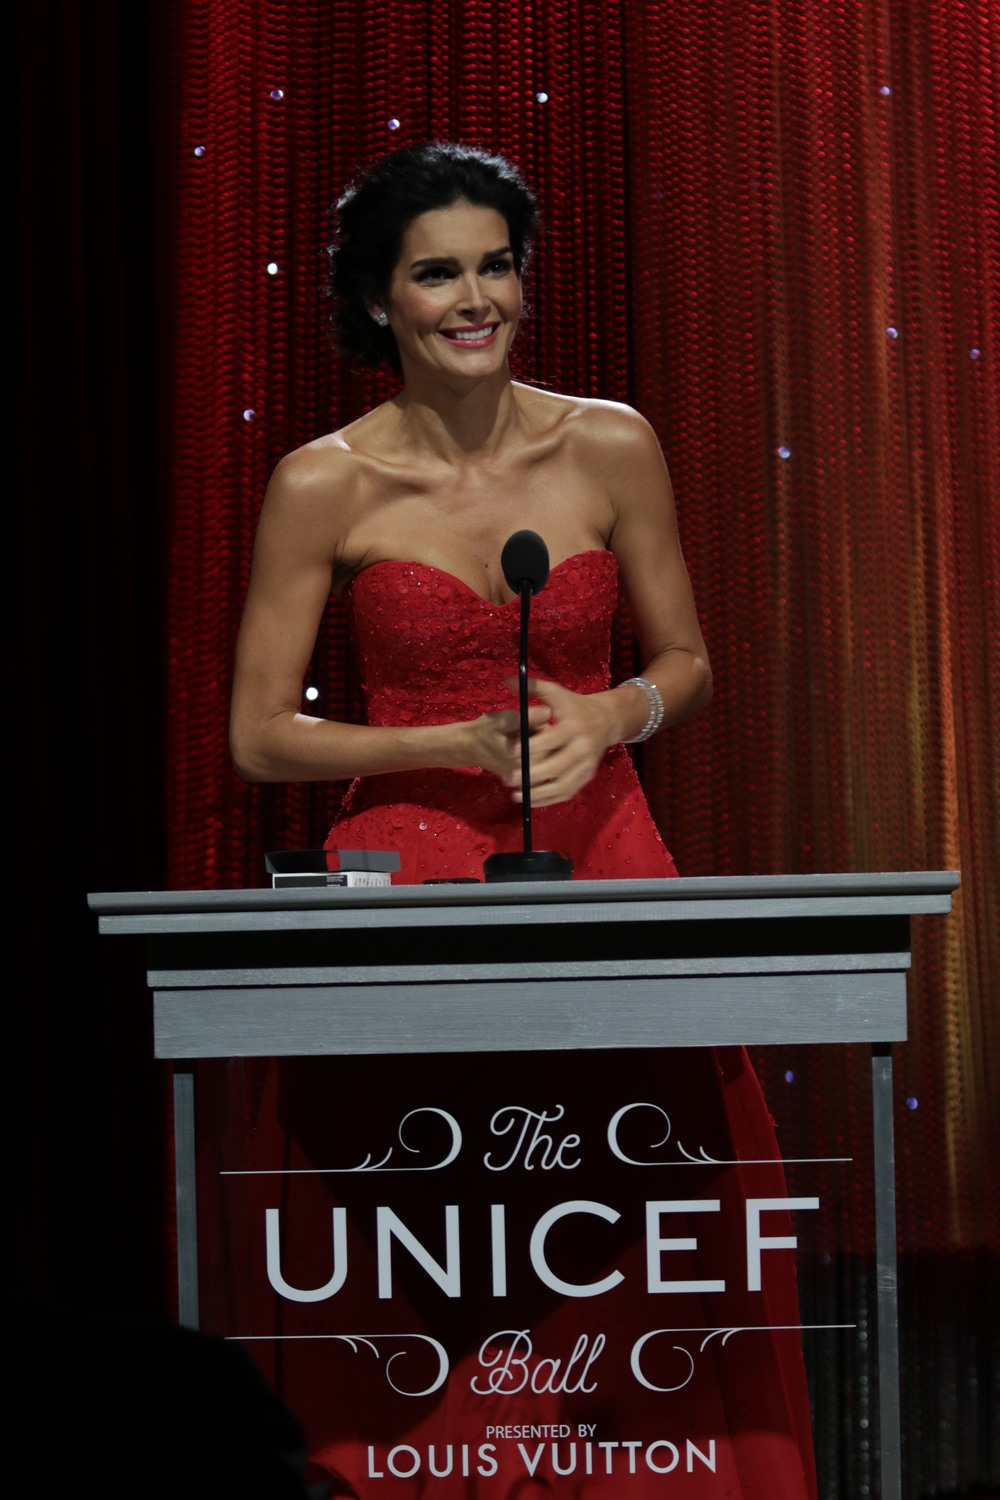 UNICEF Ambassador Angie Harmon emcees the 2016 UNICEF Ball